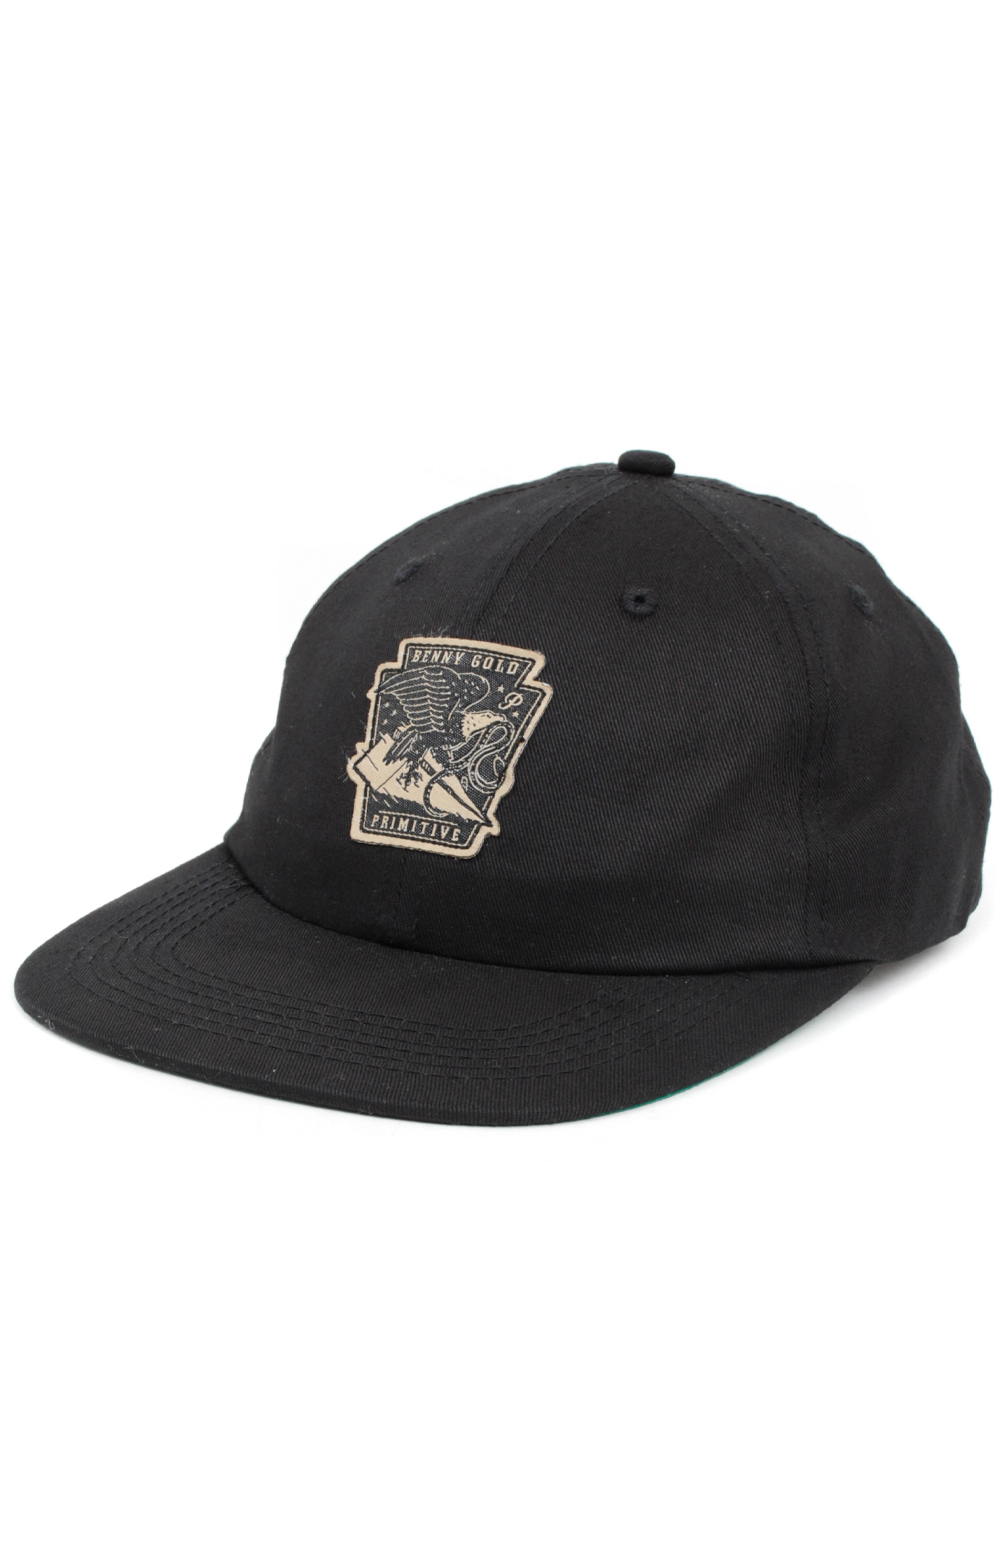 Eagle Polo Hat - Black. Loading... Home · Brands · Benny Gold x Primitive  ... 5a4aadc2137f